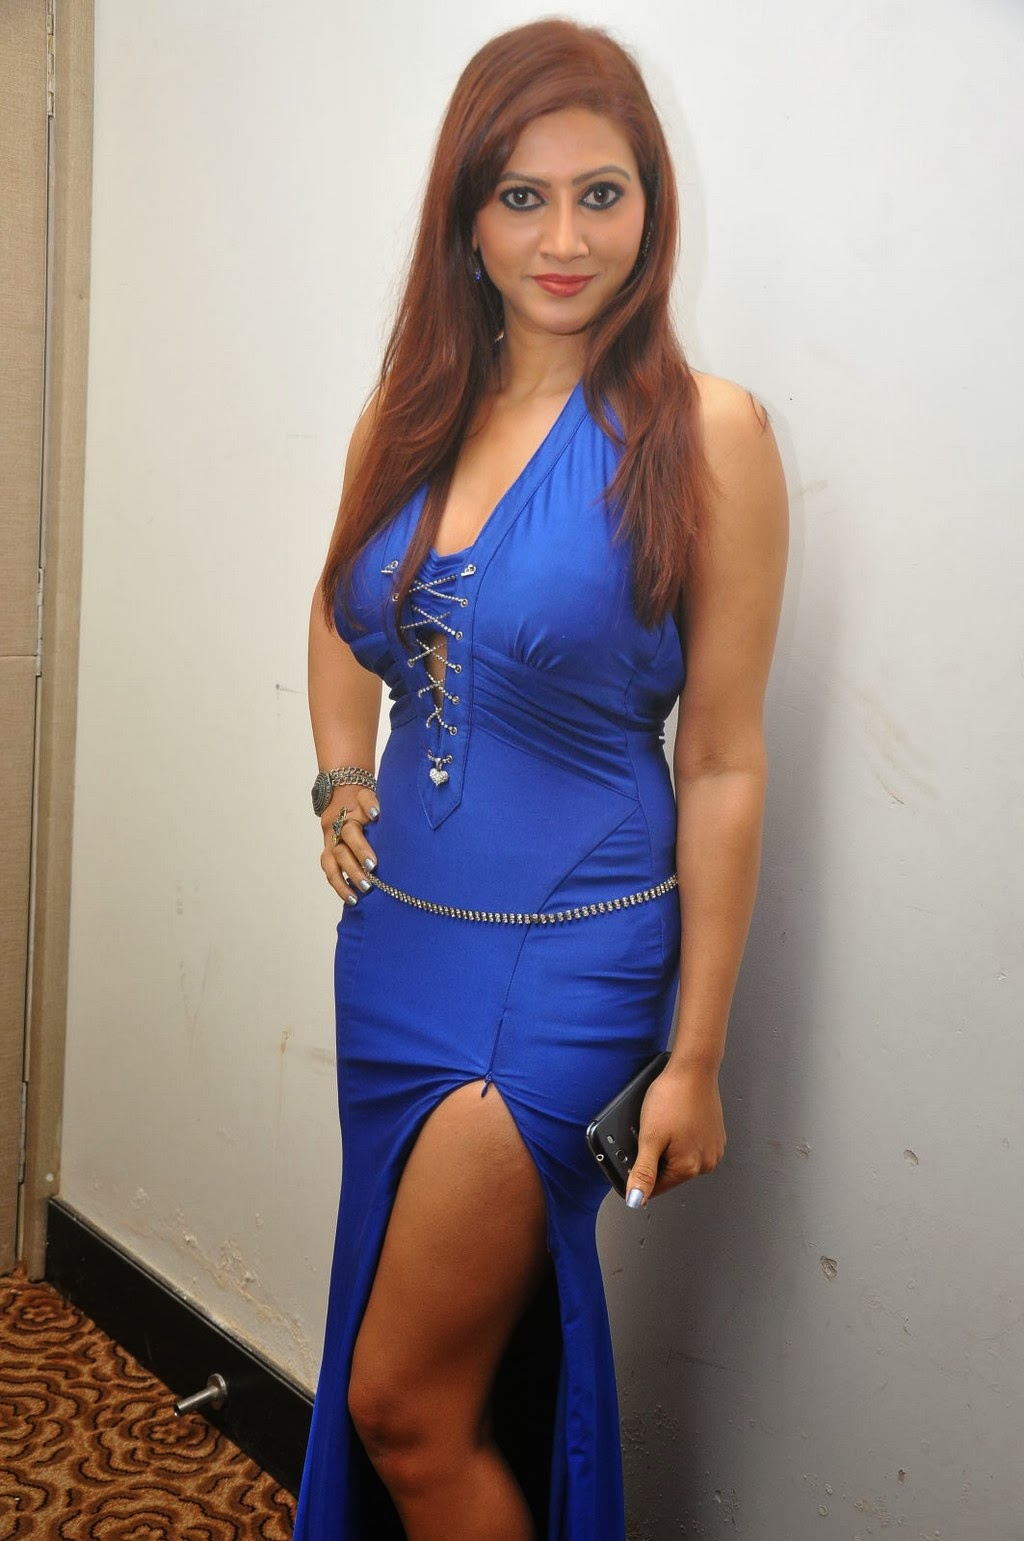 Actress Rishika Expose Cleavage Thunder Thigh In Fashion